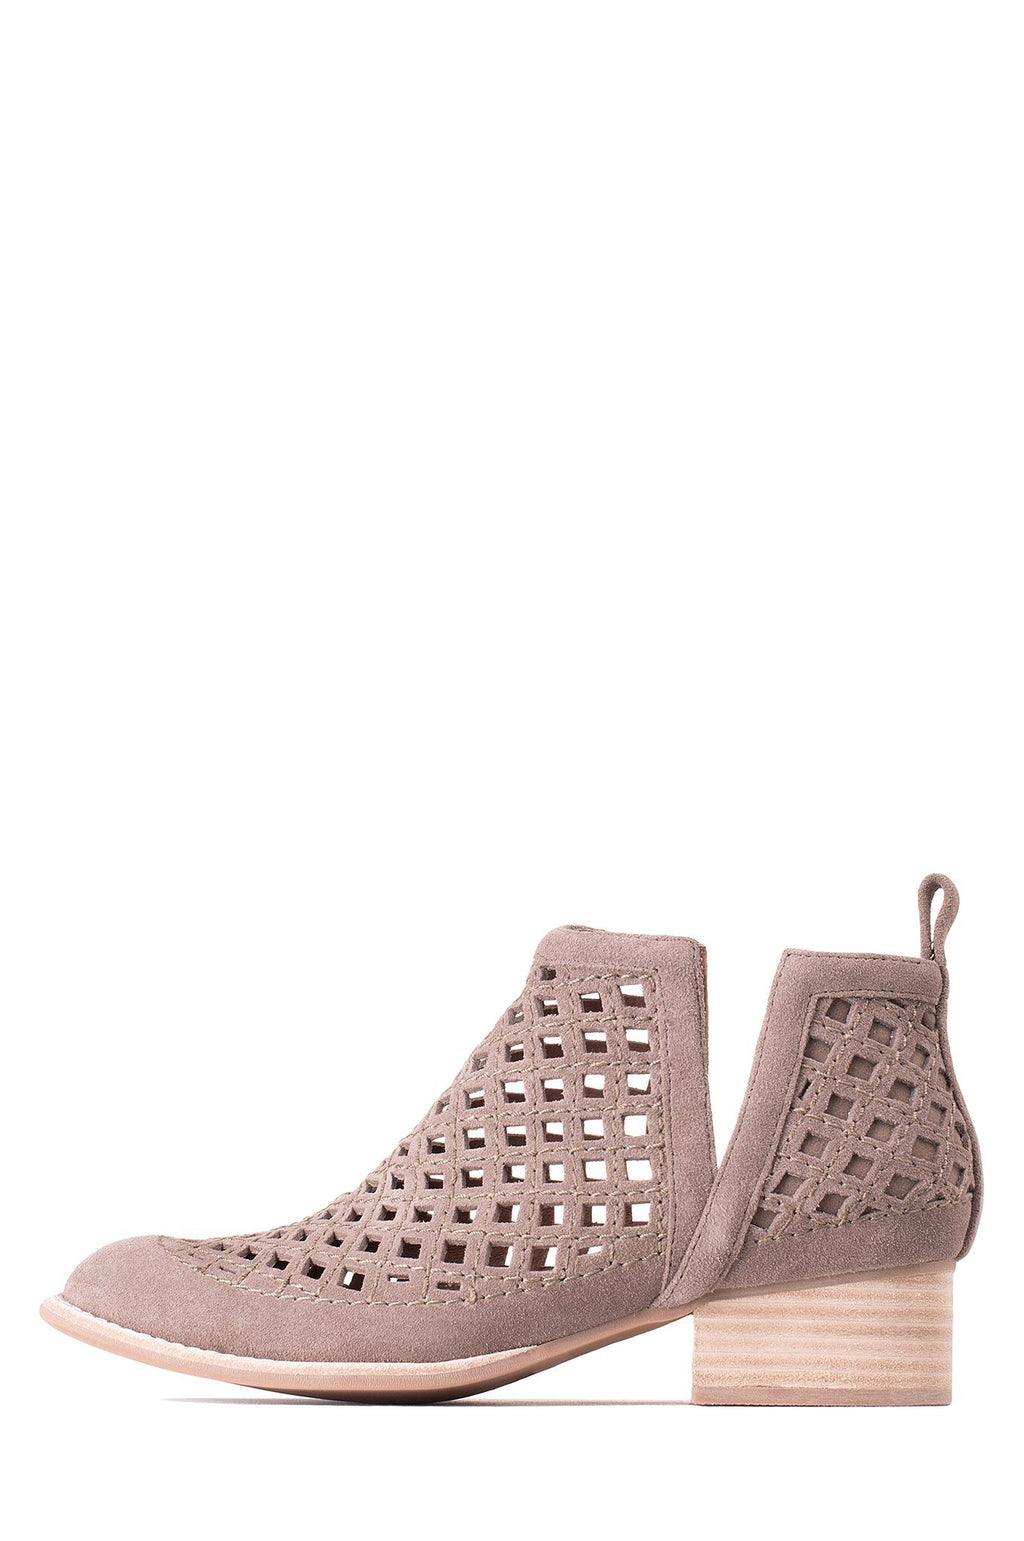 TAGGART - Jeffrey Campbell